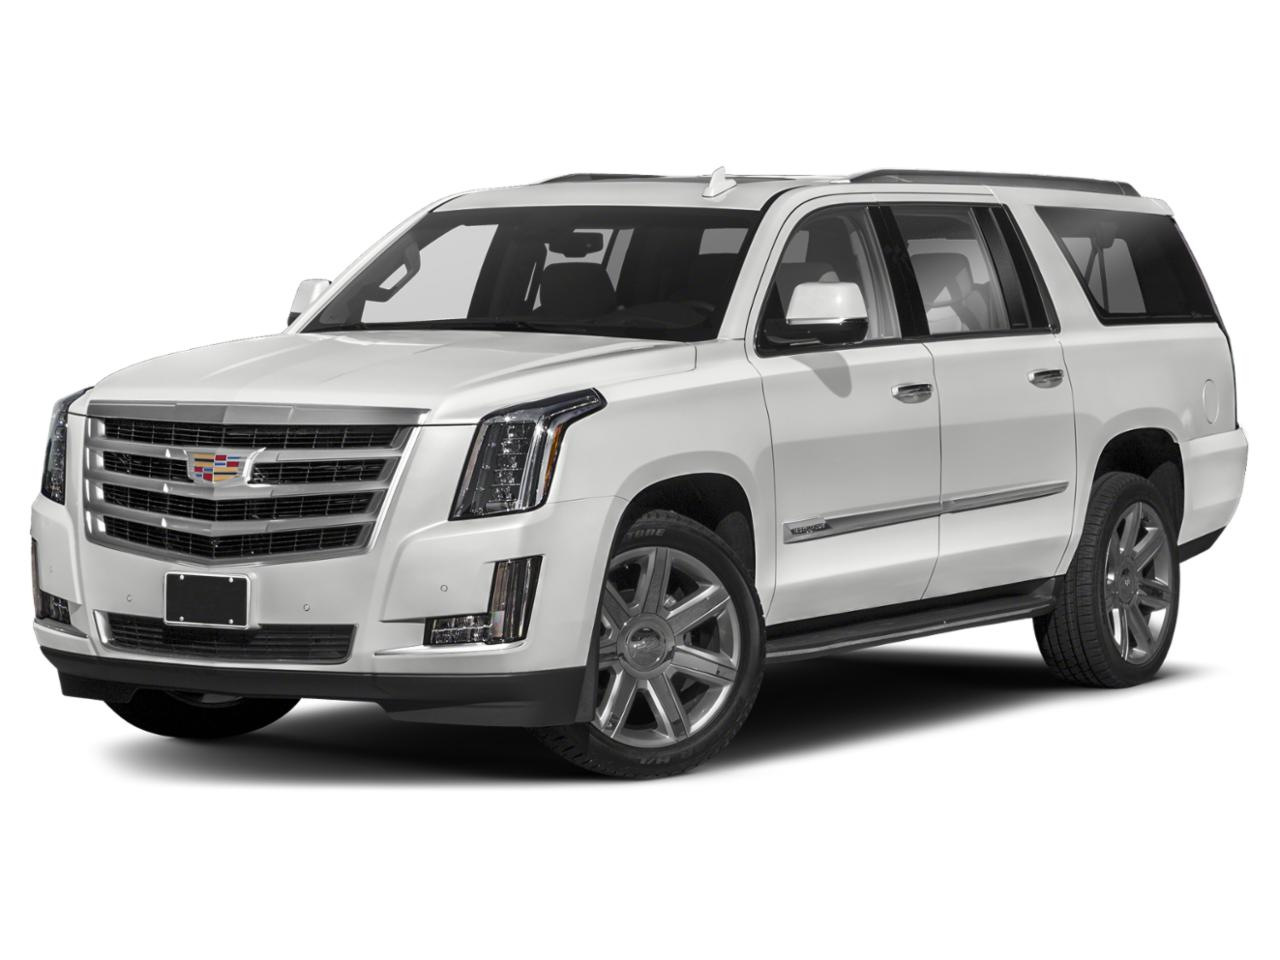 2019 Cadillac Escalade ESV Vehicle Photo in Baton Rouge, LA 70809